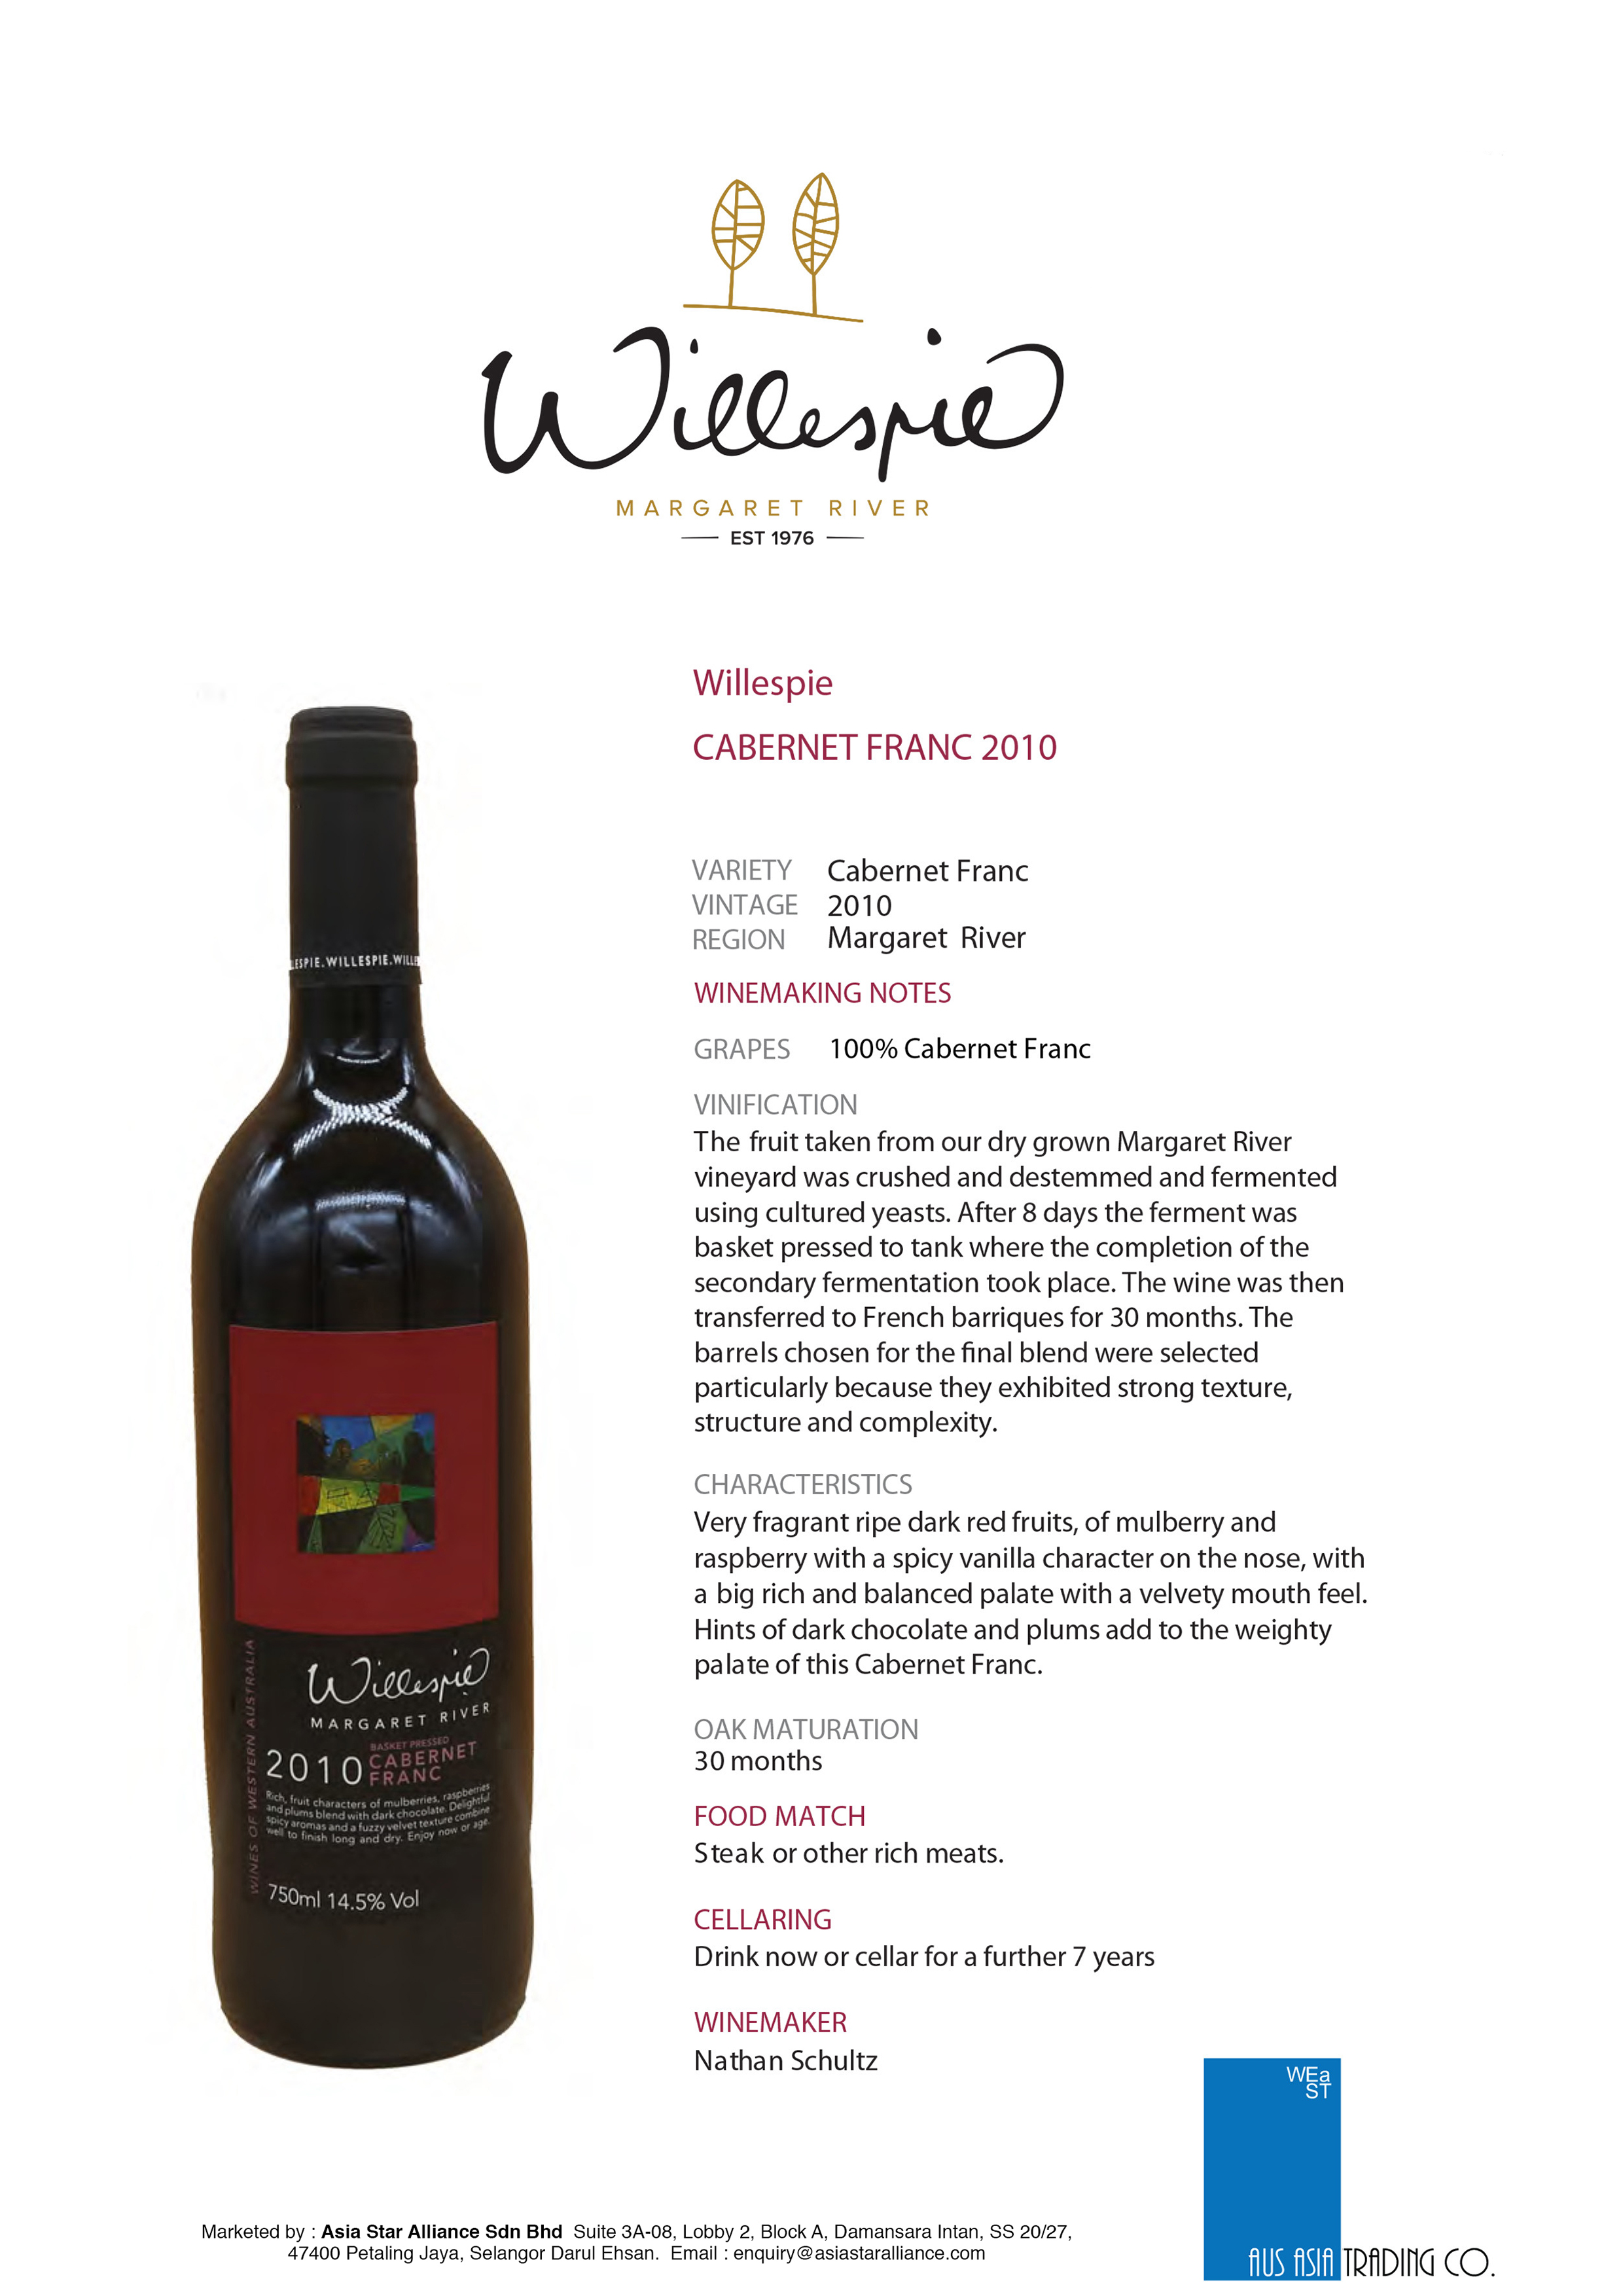 Willespie Cabernet Franc Tasting Note